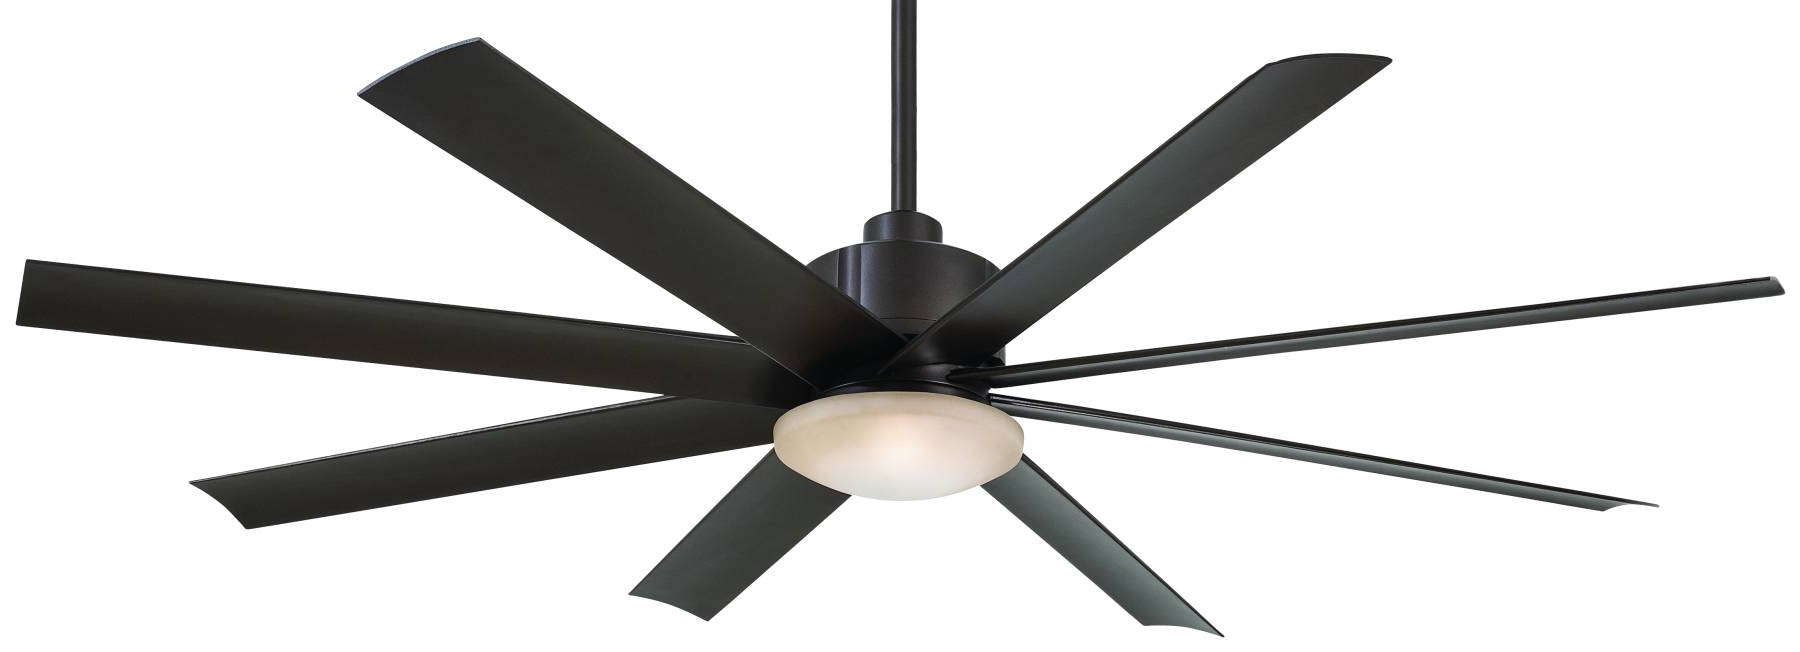 72 Inch Outdoor Ceiling Fans Within Famous 72 Inch Ceiling Fan With Light Modern Ceiling Design Outdoor Wood (Gallery 11 of 20)